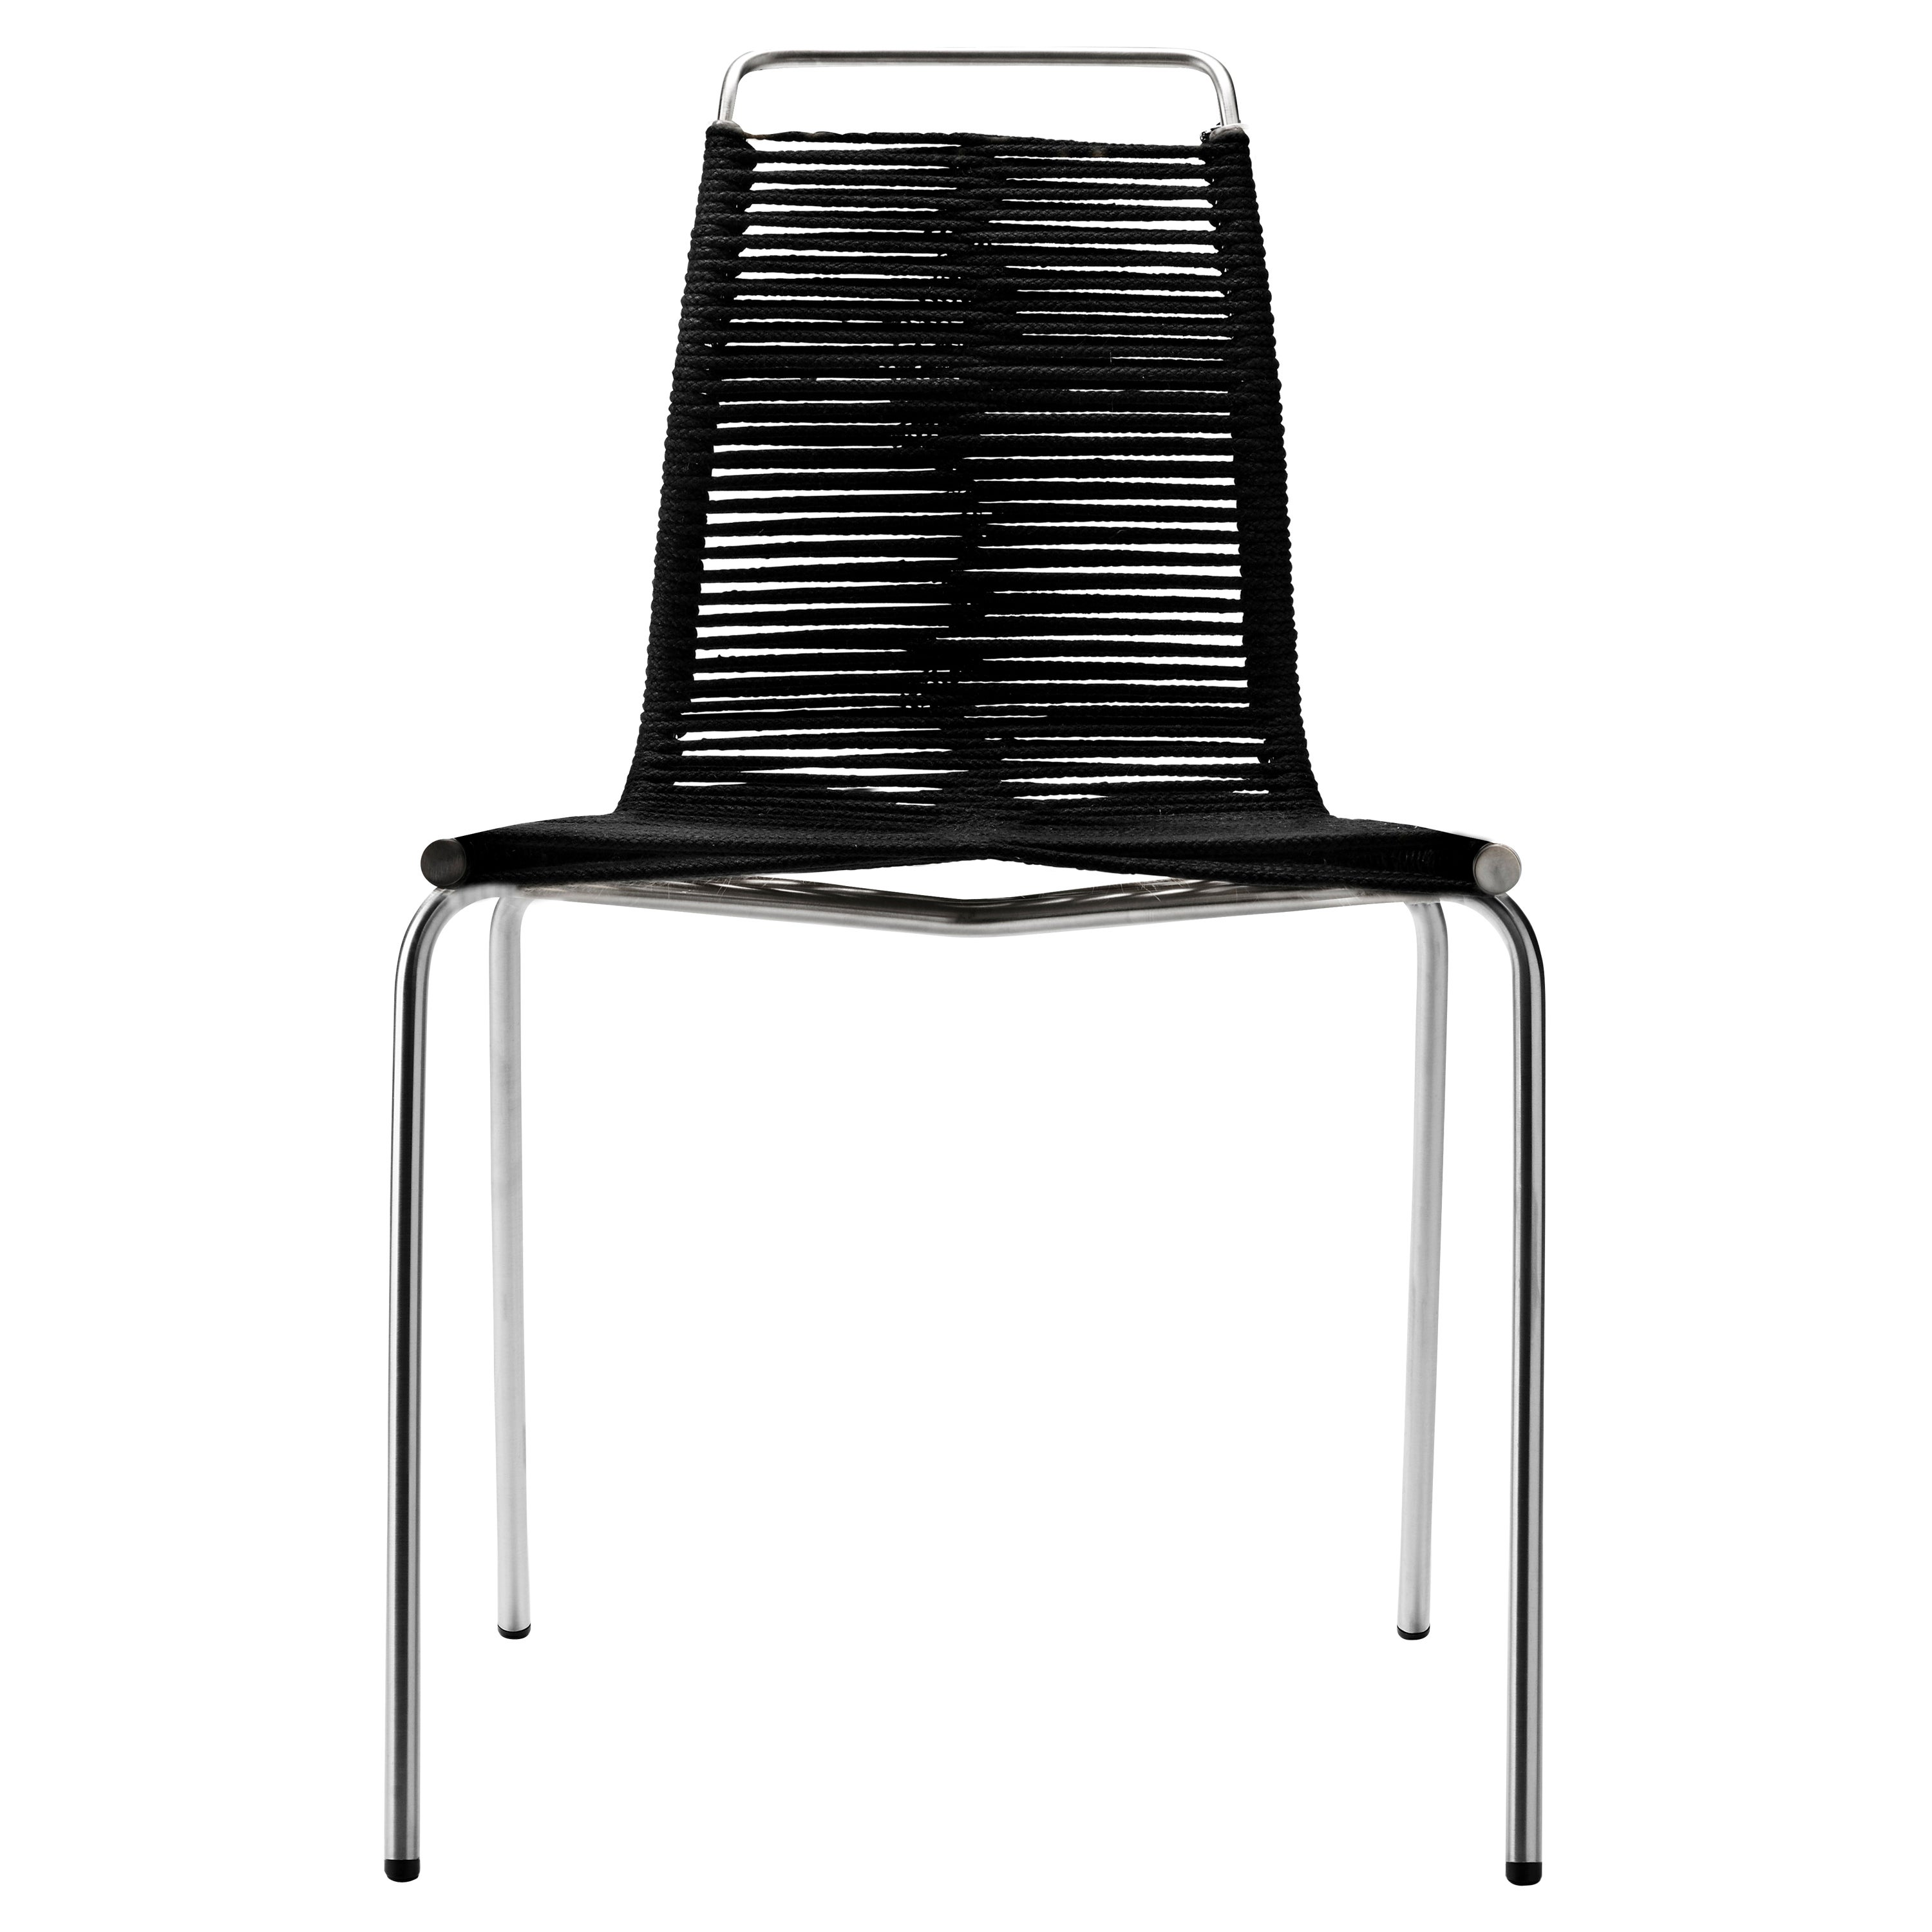 PK1 Dining Chair in Stainless Steel Base & Black Flag Halyard by Poul Kjærholm